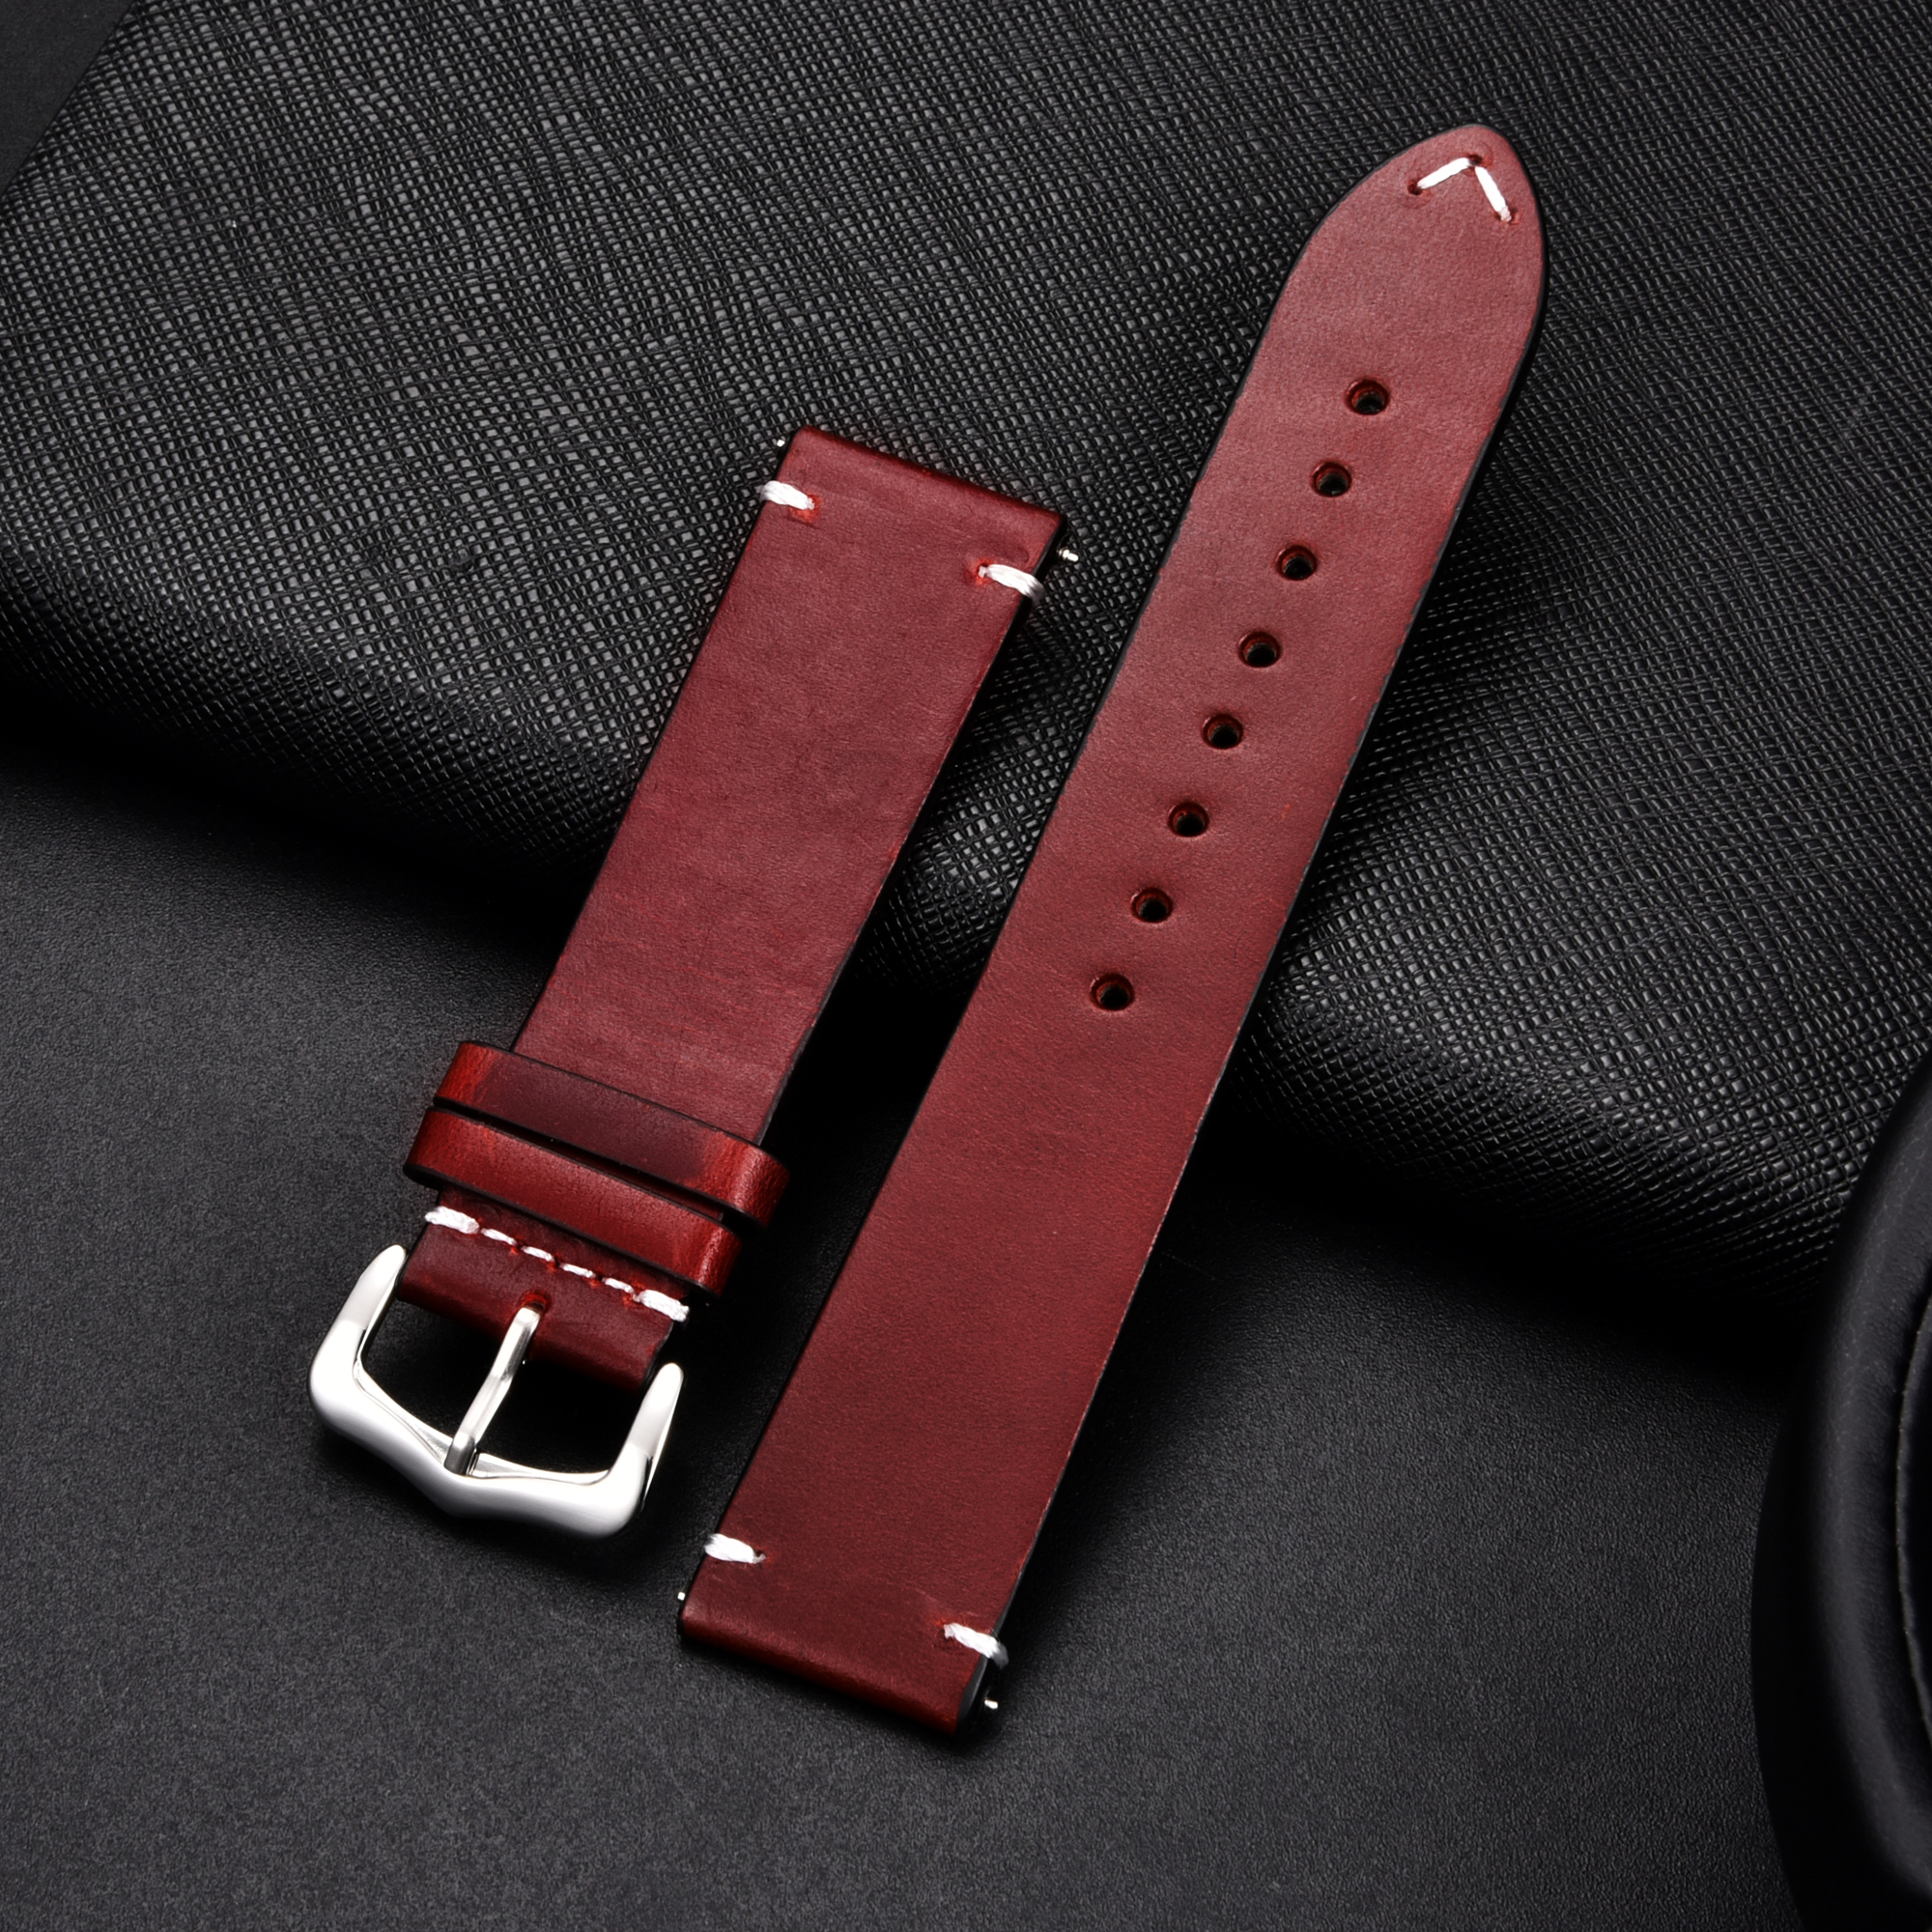 Retro Genuine Leather Strap Oil Wax Oily Discoloration Cowhide Leather Watchband 18 20 22 24mm High Quality Business Watch Band